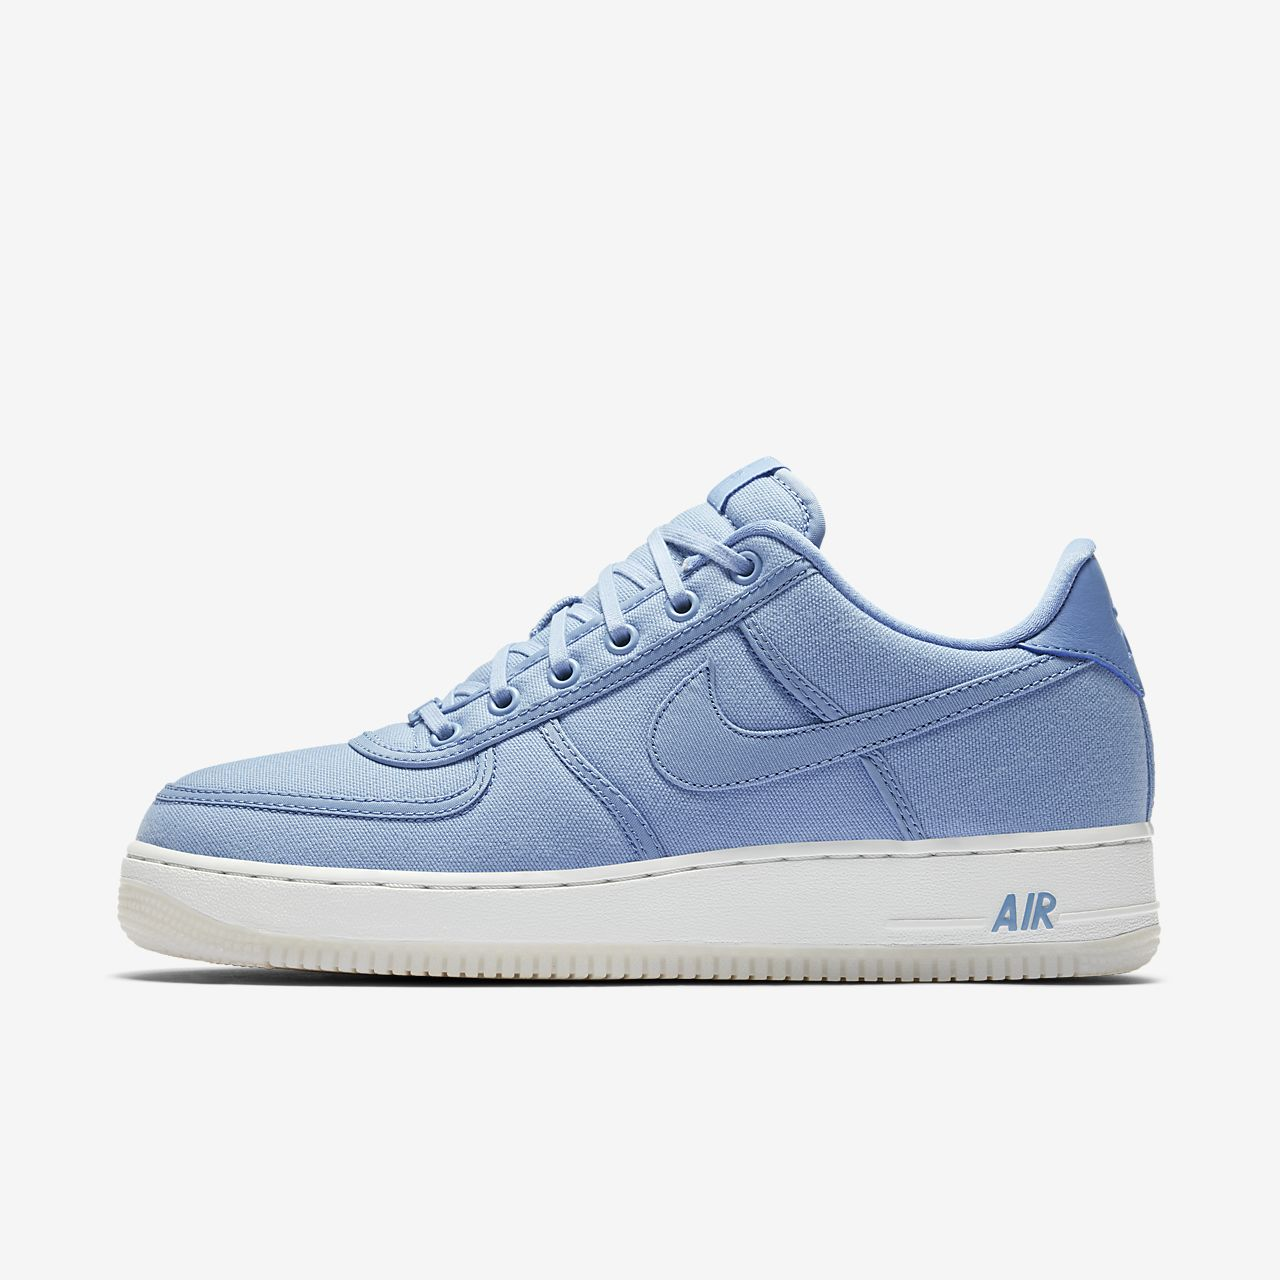 low priced e30ab d8cce ... germany nike air force 1 low retro qs mens shoe 148cf 509f5